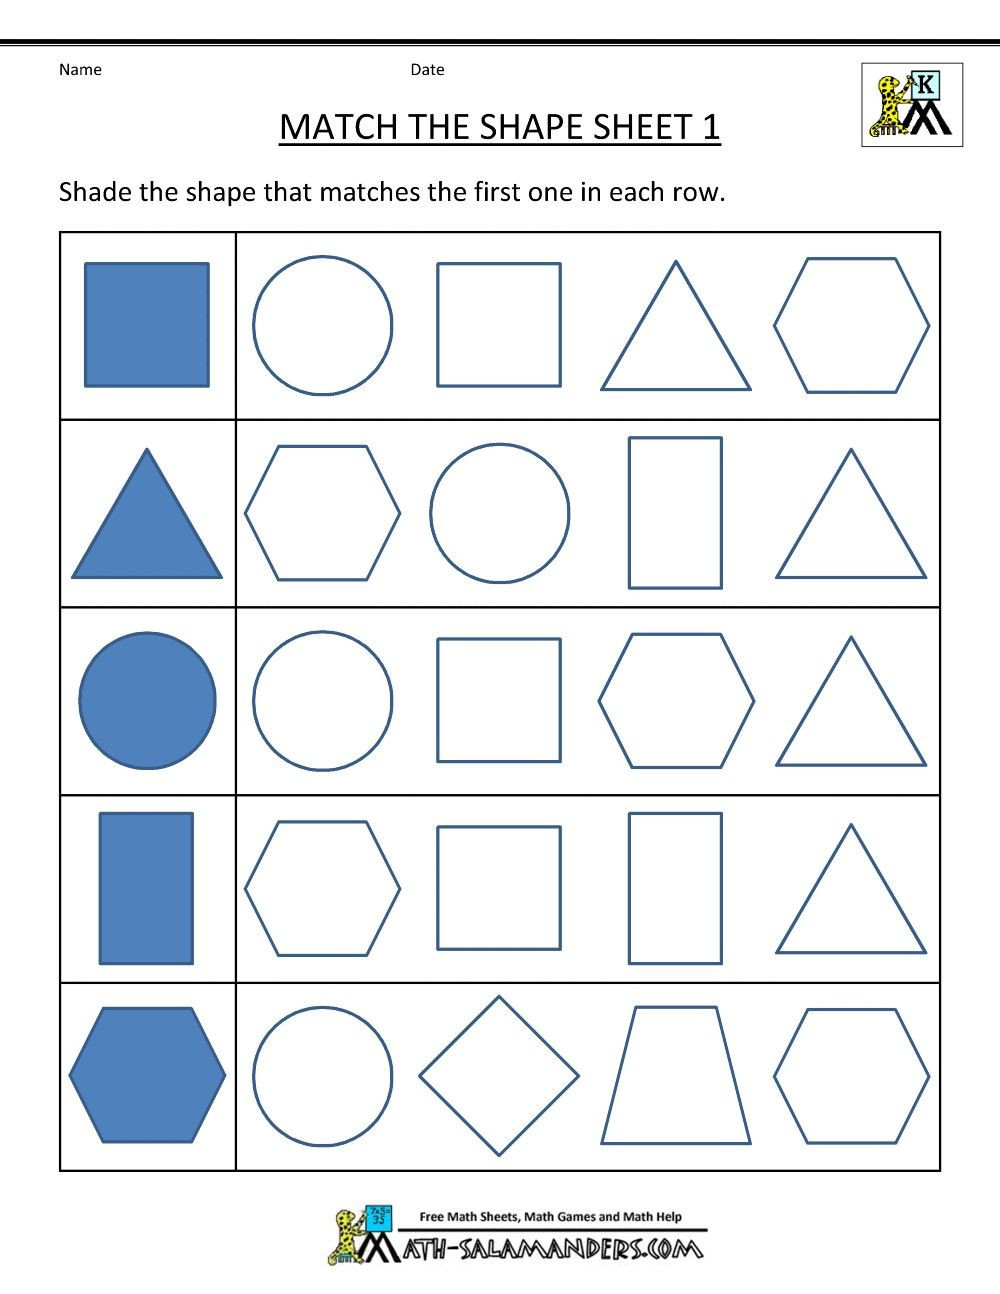 Polygon Worksheets 5th Grade 3 Worksheet Free Math Worksheets Fifth Grade 5 Geometry